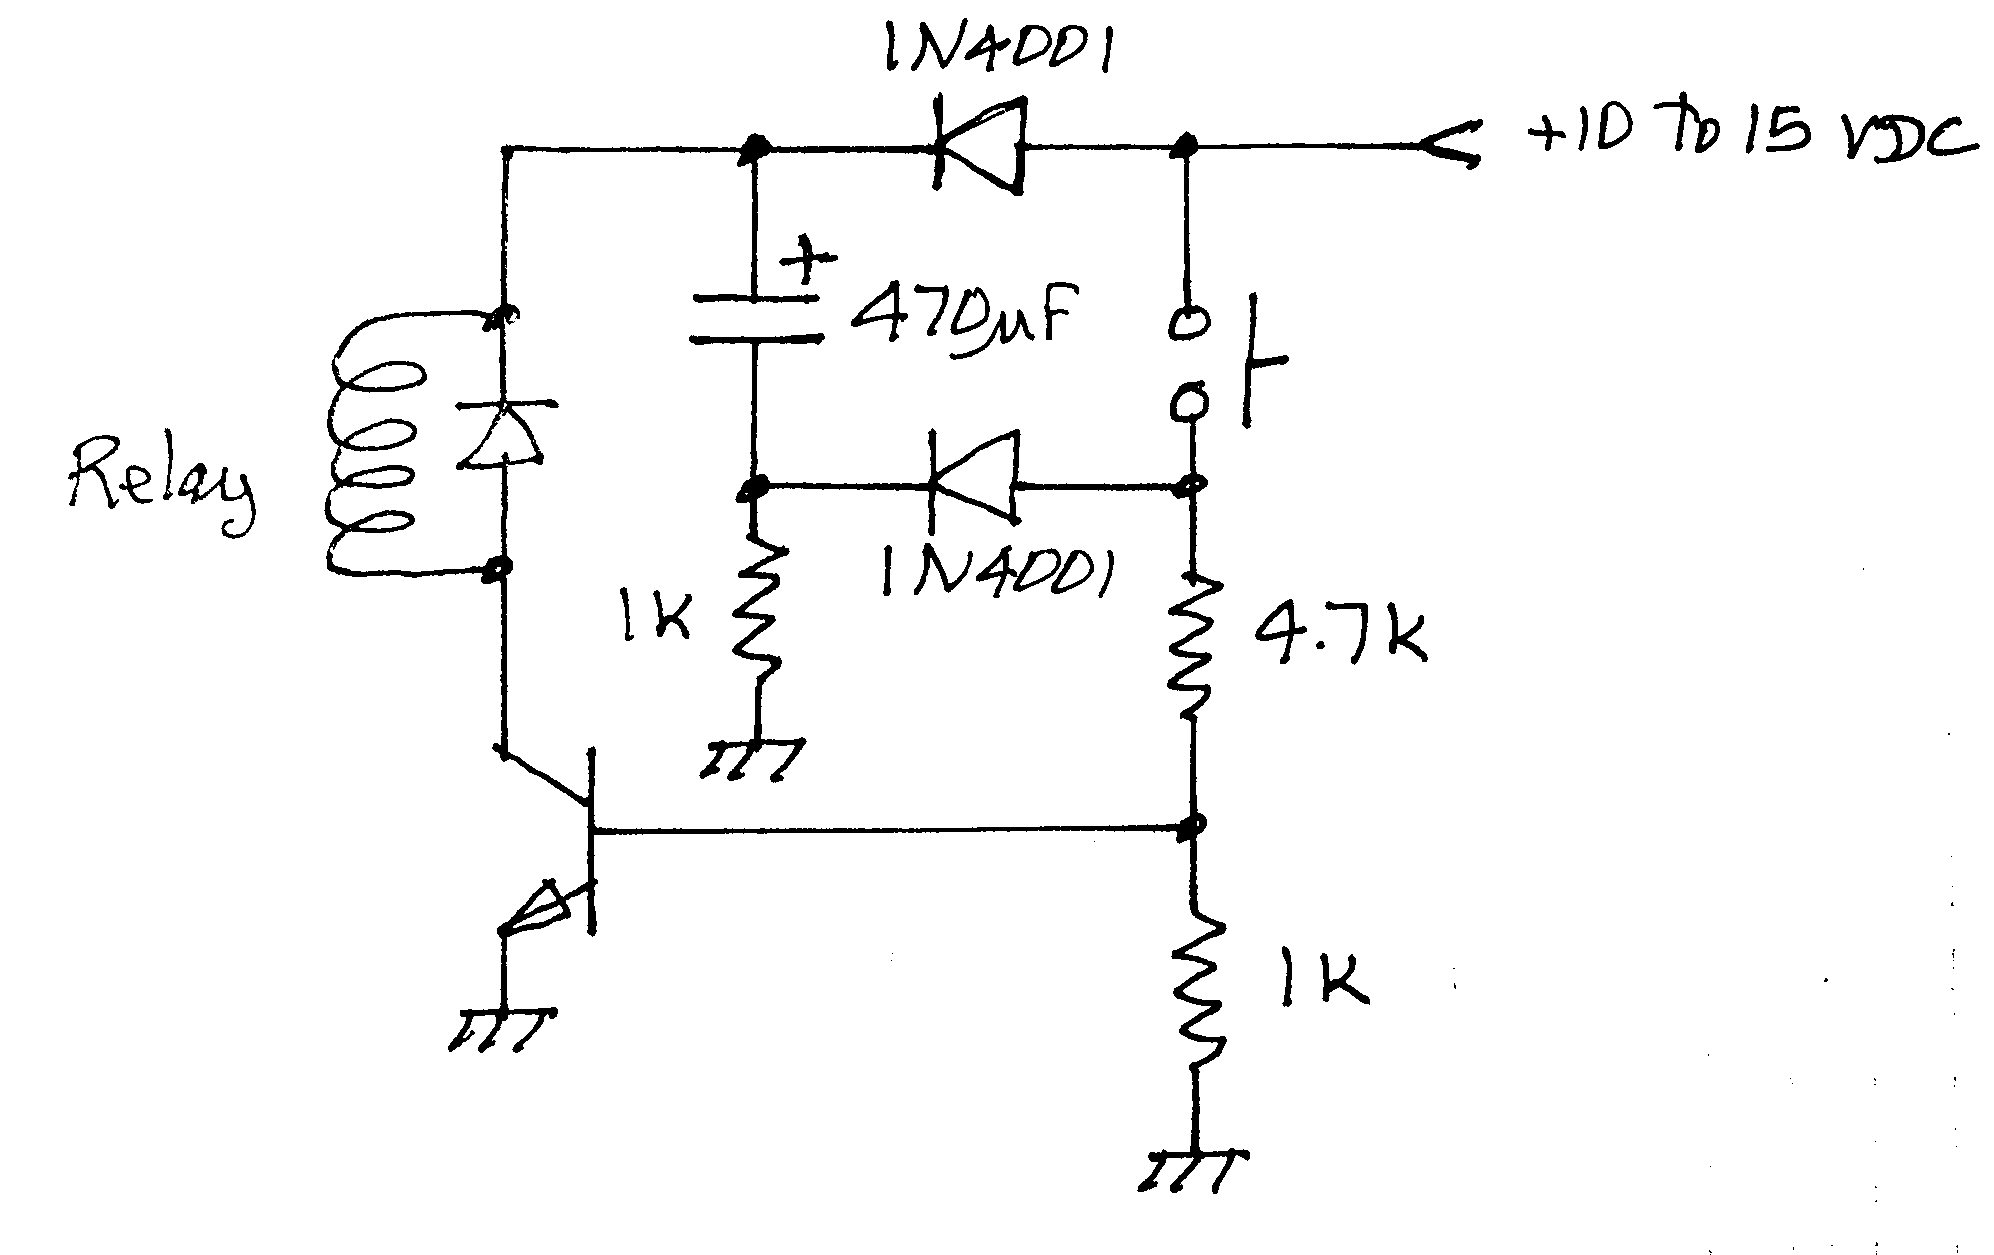 24v relay wiring diagram 5 pin three way switch multiple lights tab organisedmum de how to operate relays from 12v ko4bb rh com circuit omron